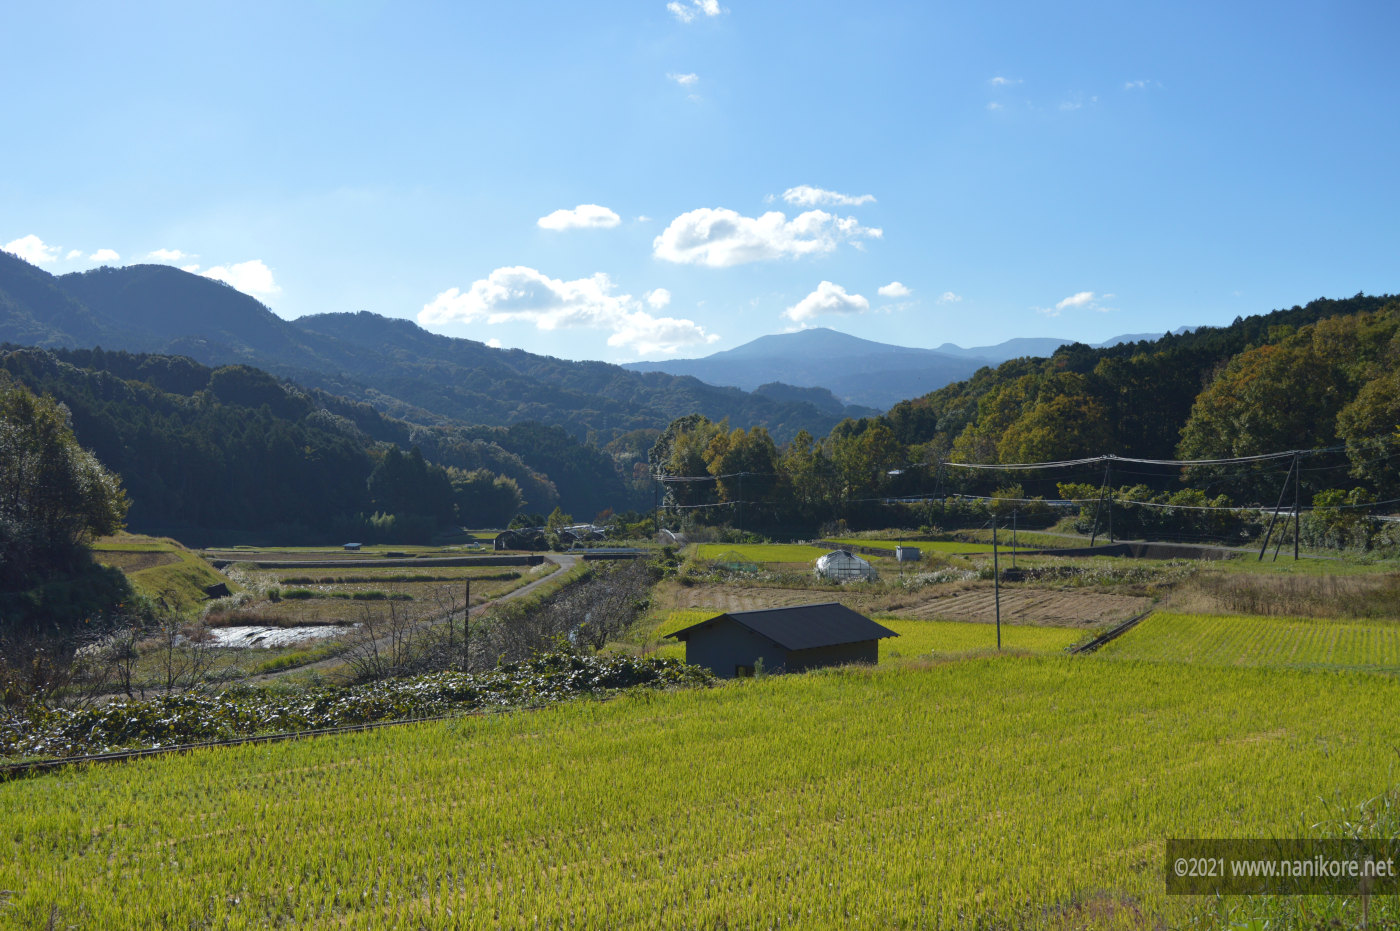 View down the farming valley of Izu